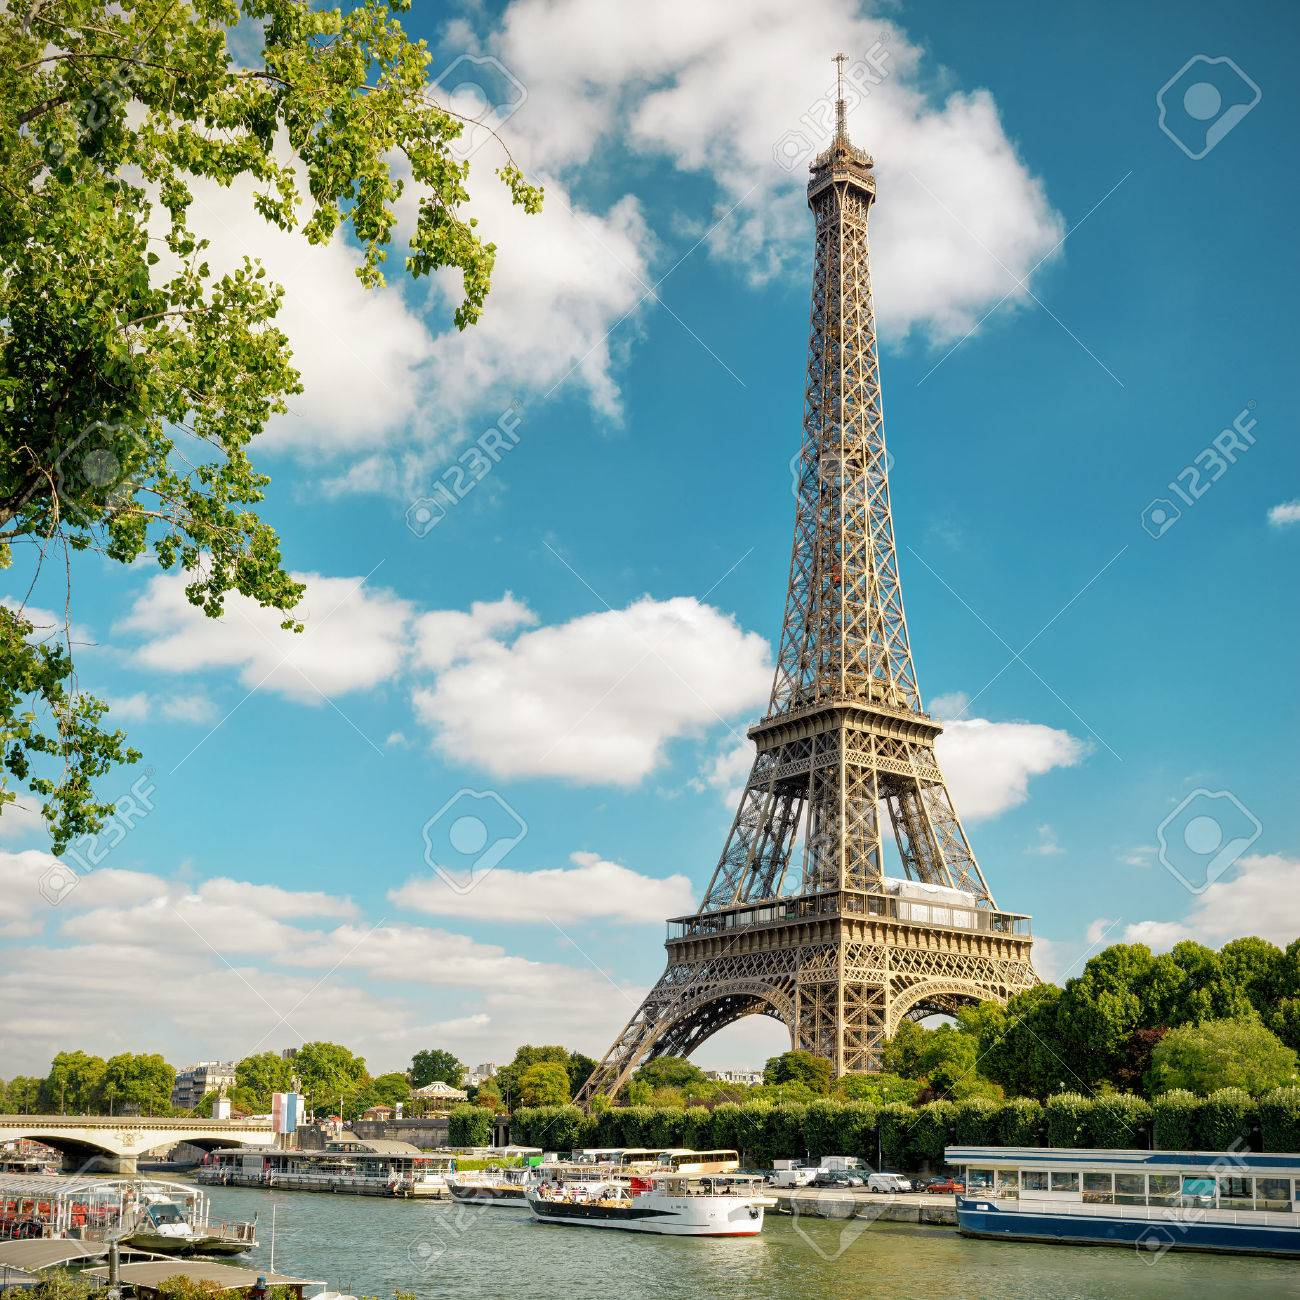 The Eiffel tower from the river Seine in Paris, France Banque d'images - 50018707